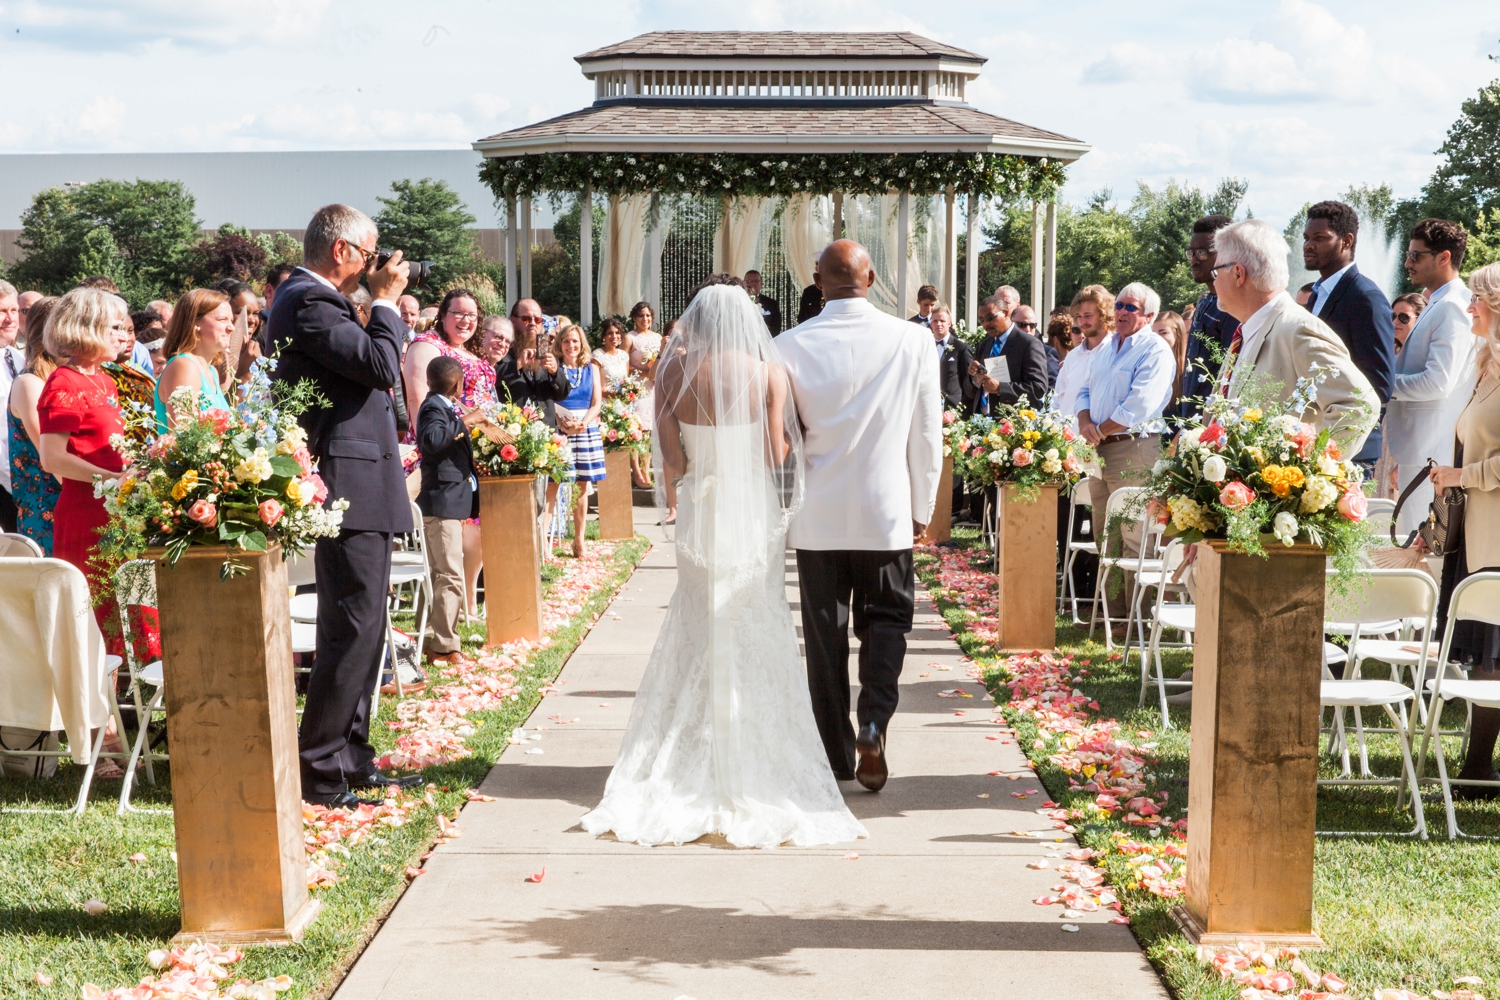 Wedding-at-The-Savannah-Center-West-Chester-Ohio-Photography-Chloe-Luka-Photography_7484.jpg